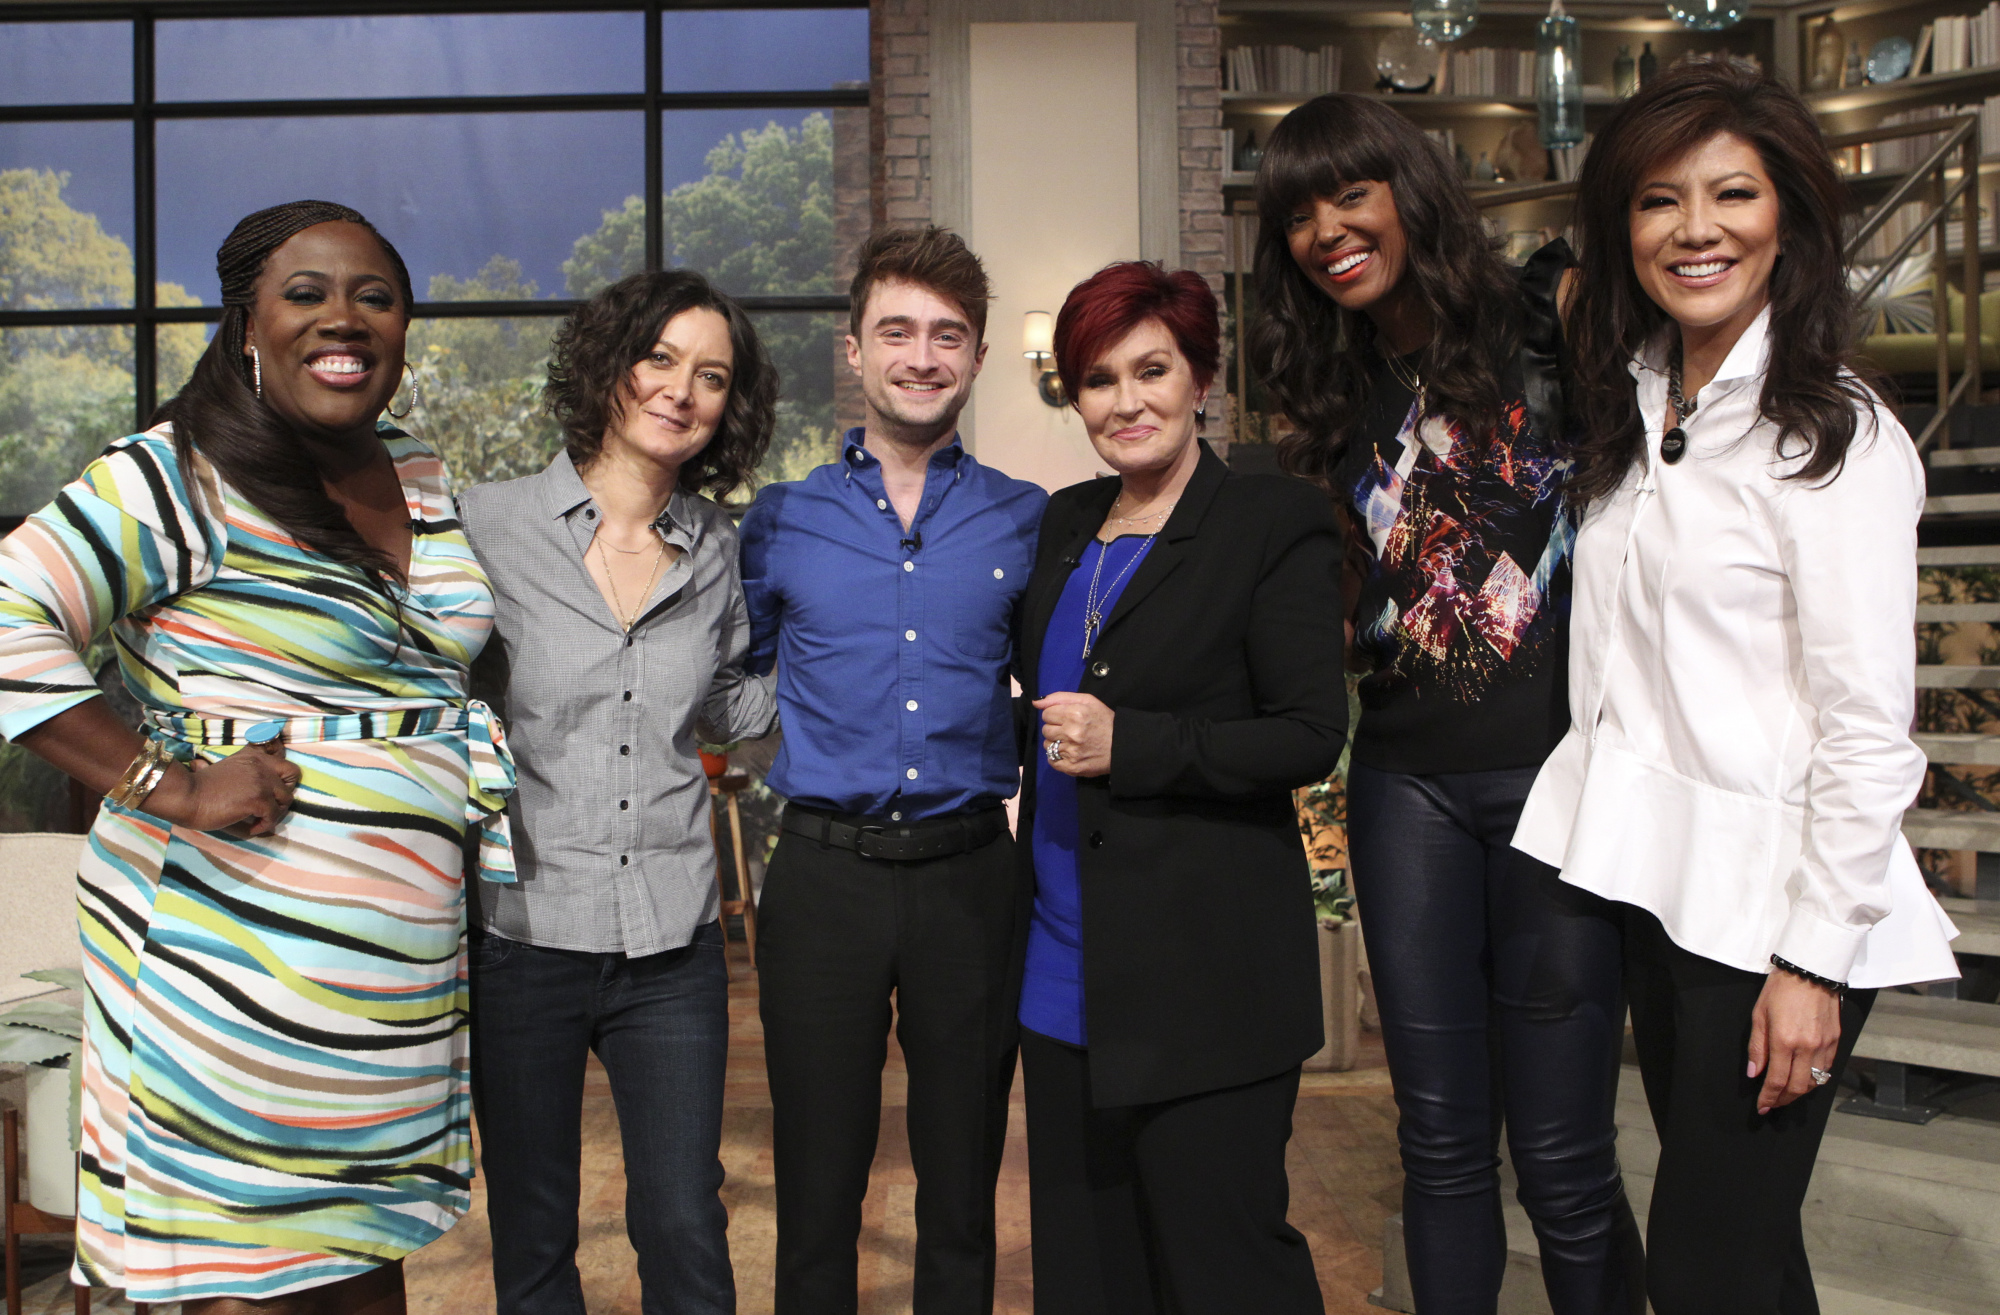 Daniel Radcliffe with the hosts